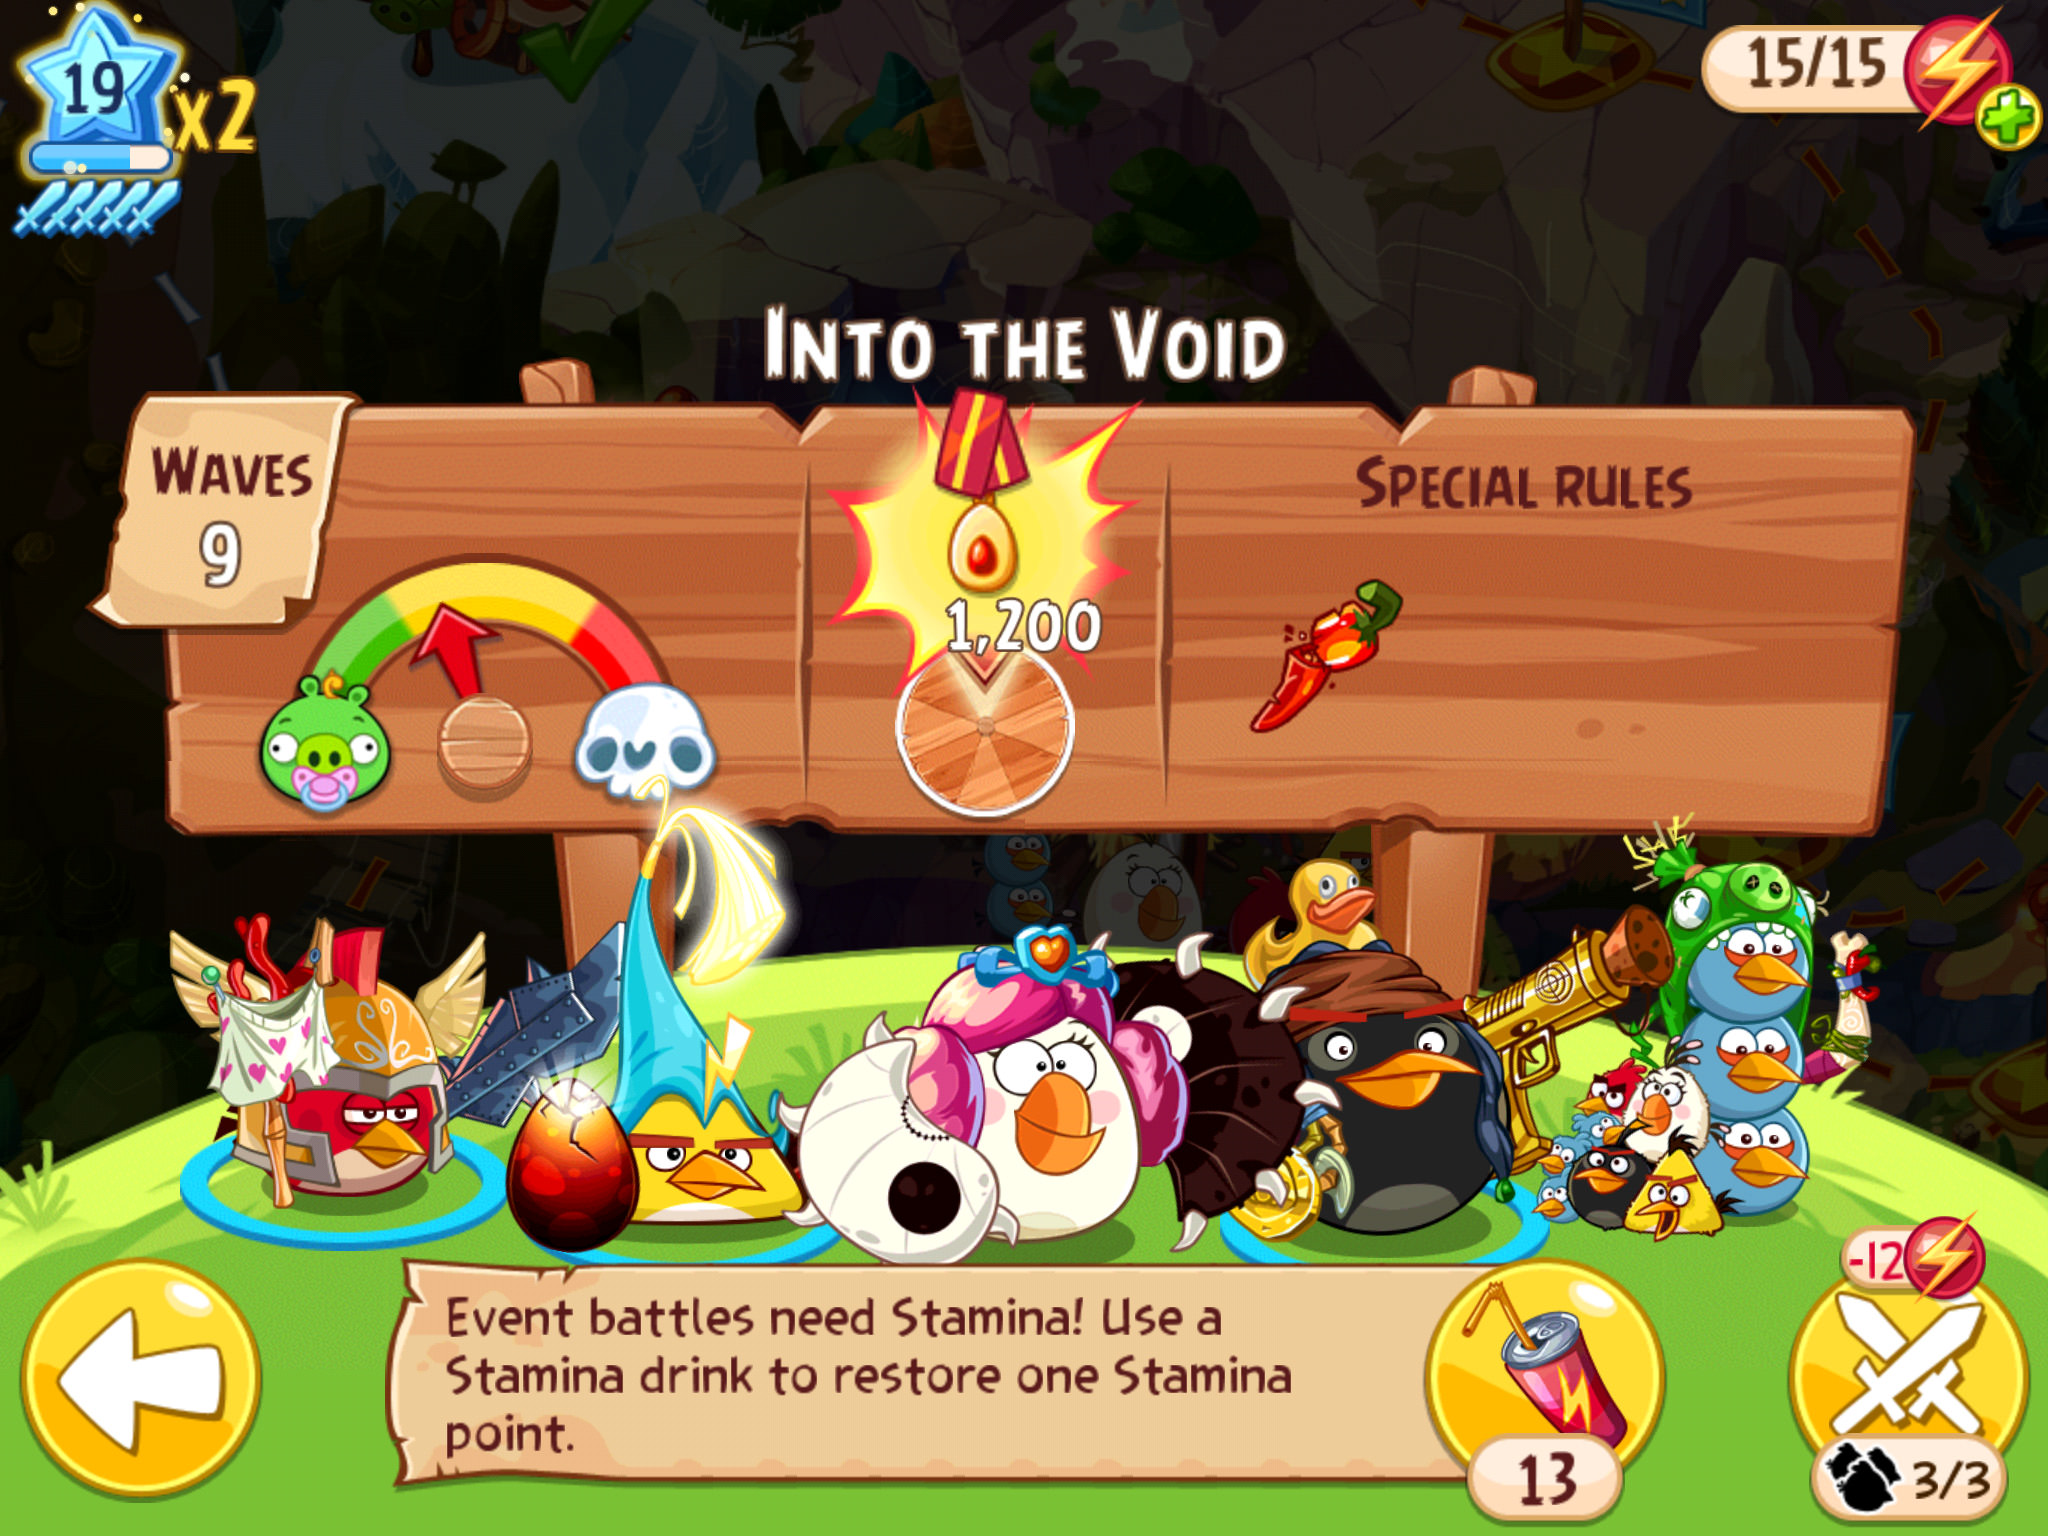 Angry Birds and Puzzle and Dragons partnership - Pre-battle